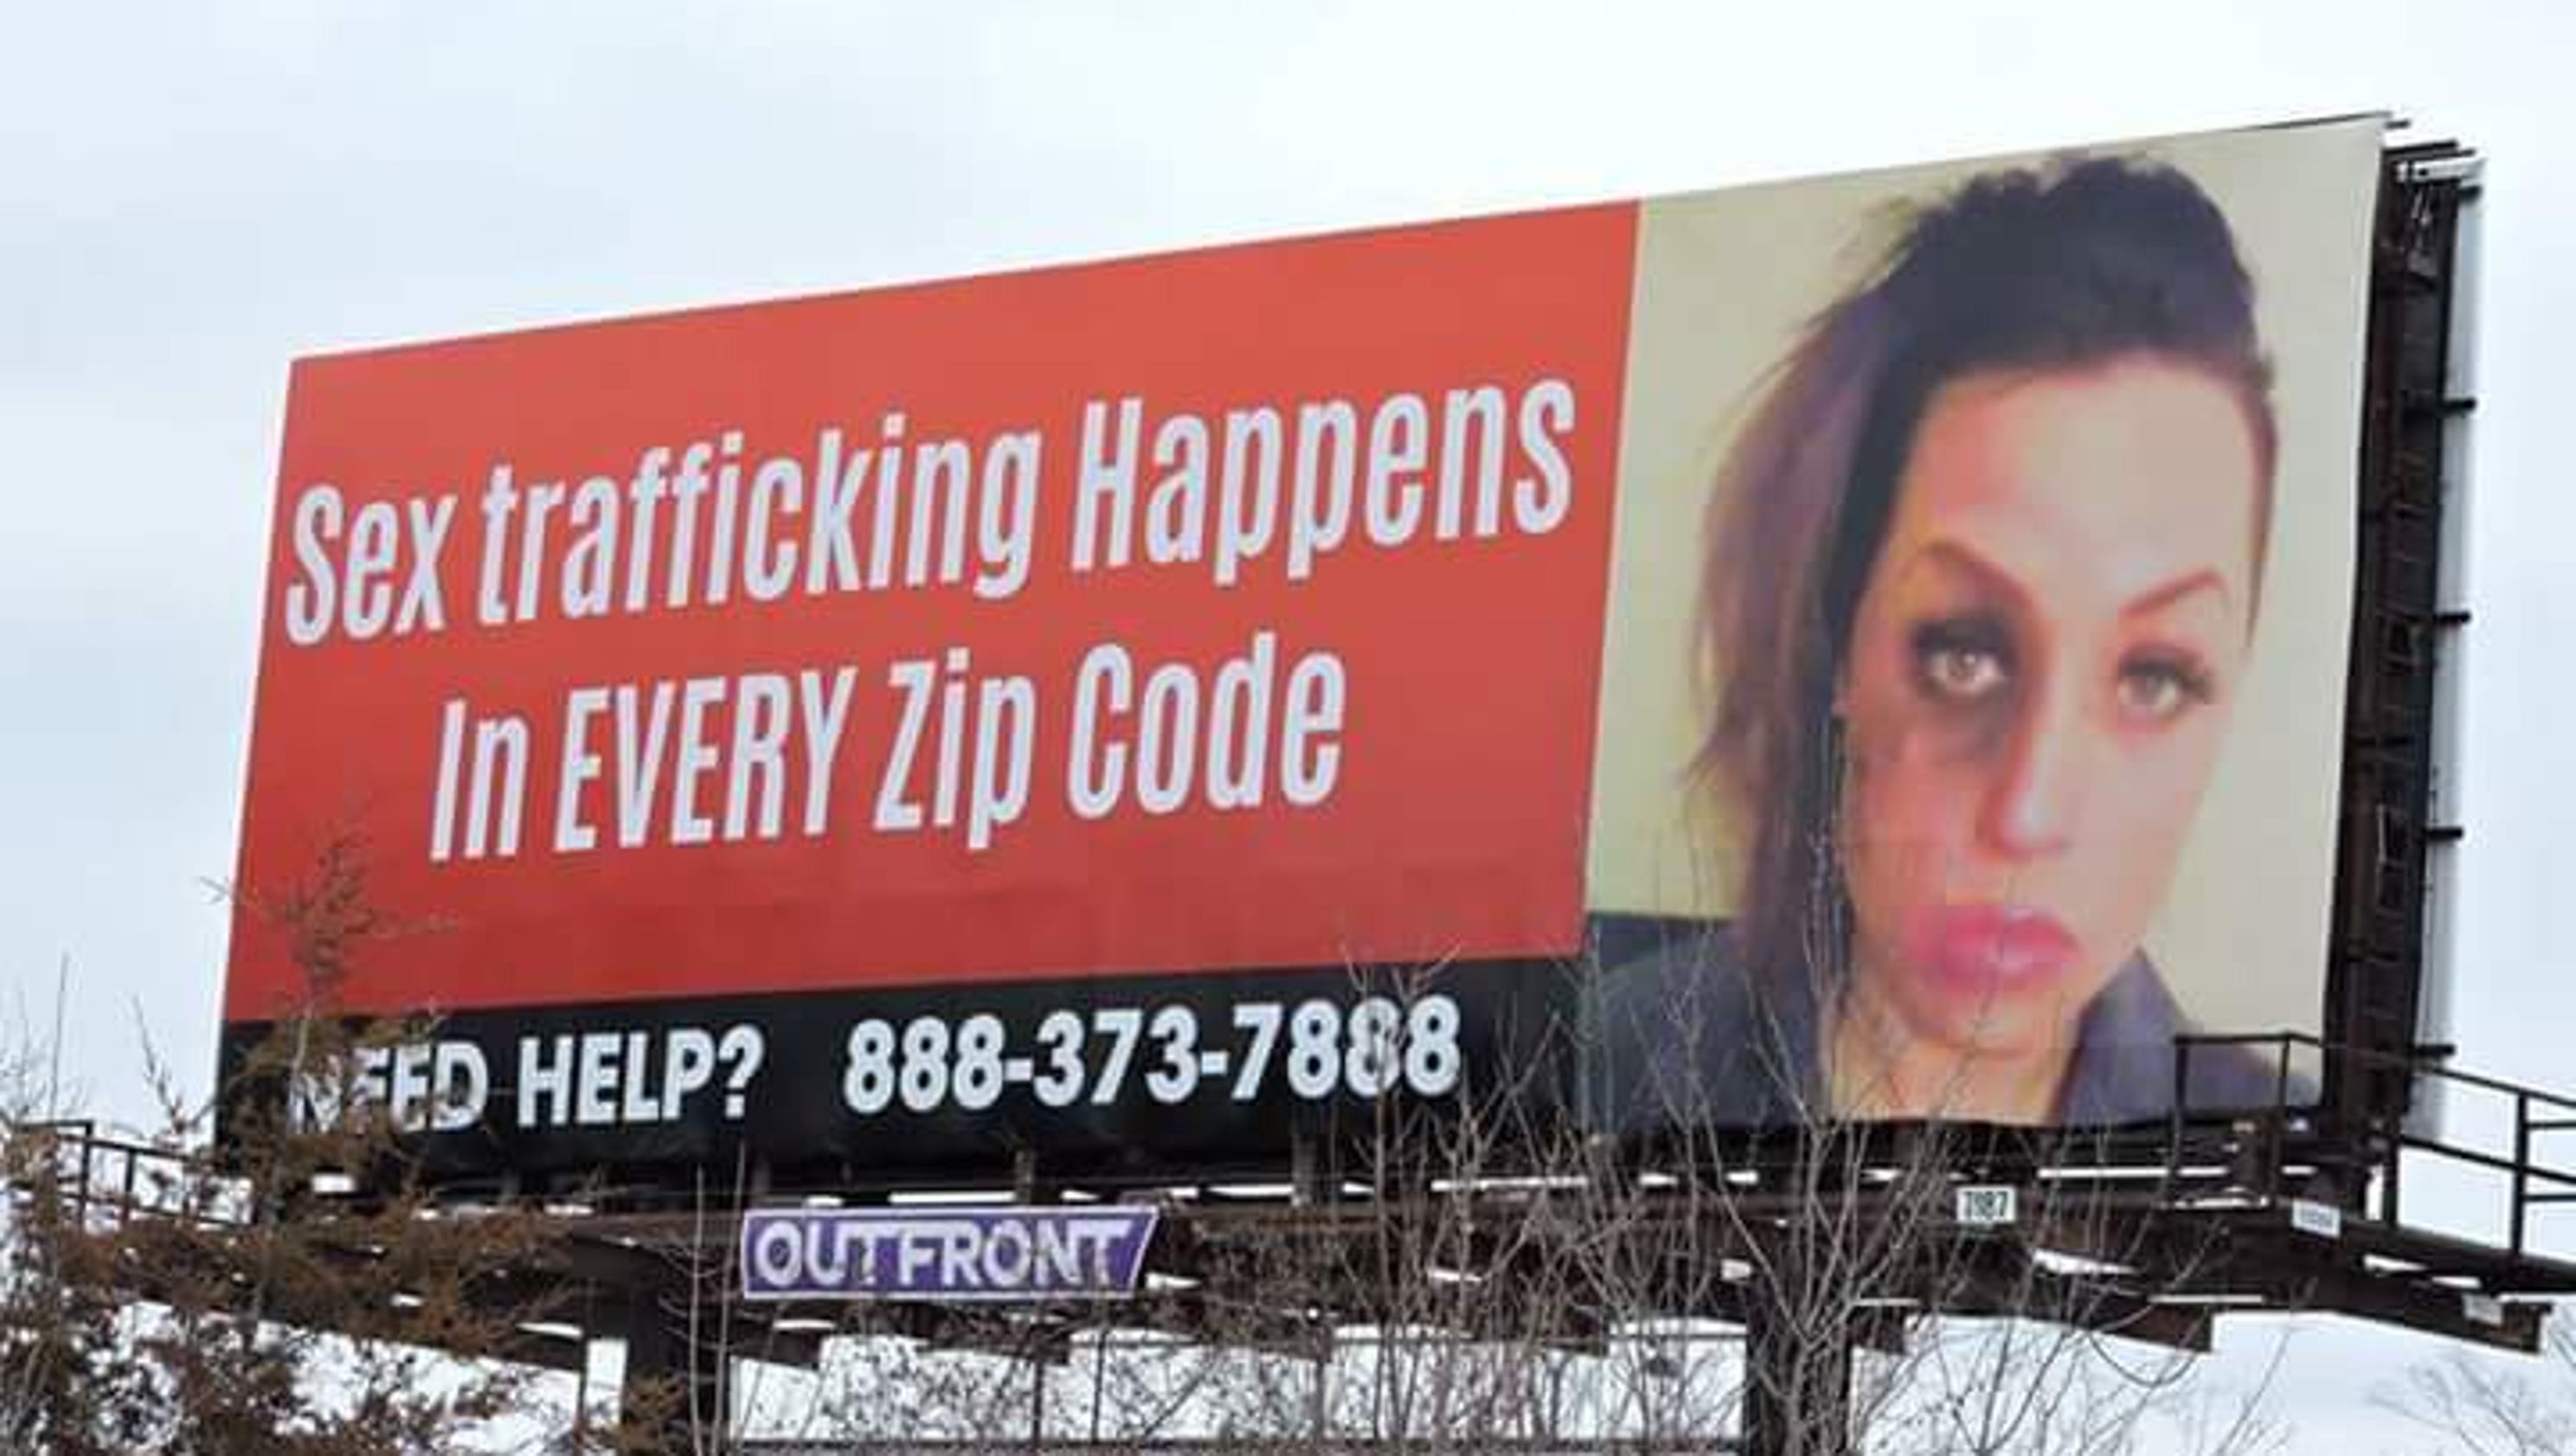 20 stings 49 arrests A look at Lansing prostitution